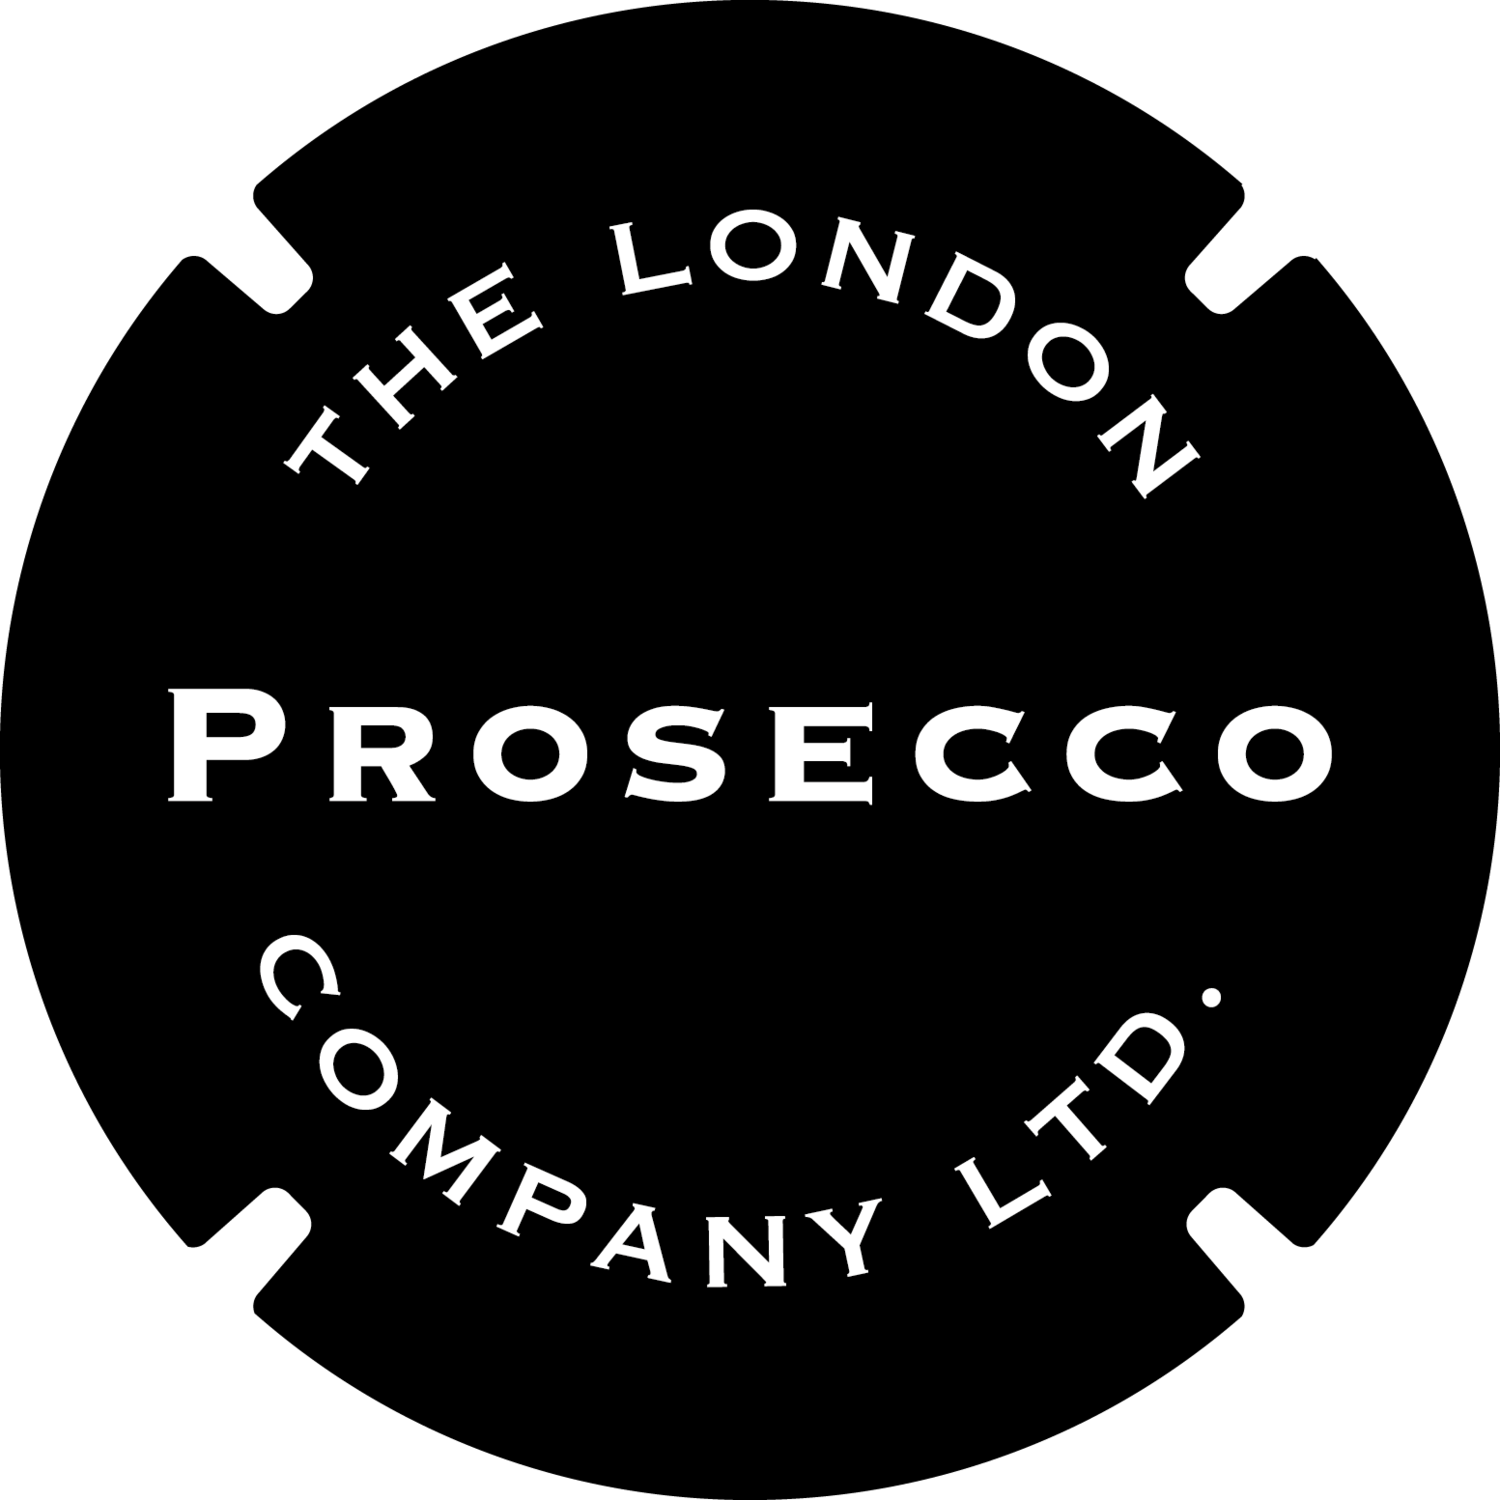 London Prosecco Company